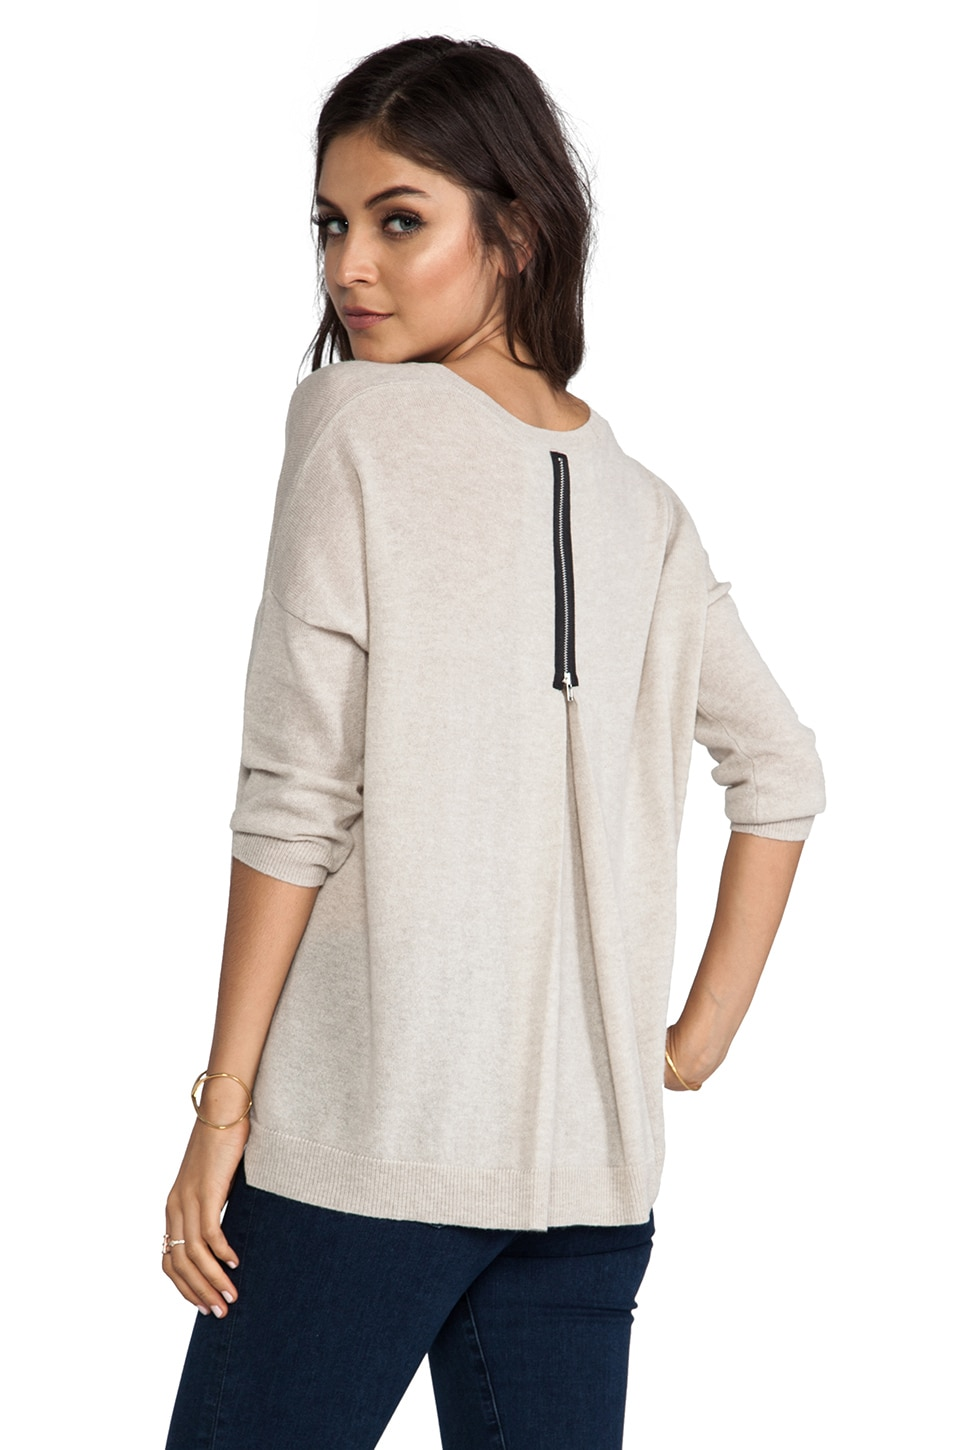 Autumn Cashmere 3/4 Sleeve Zipper Back Sweater in Beachwood